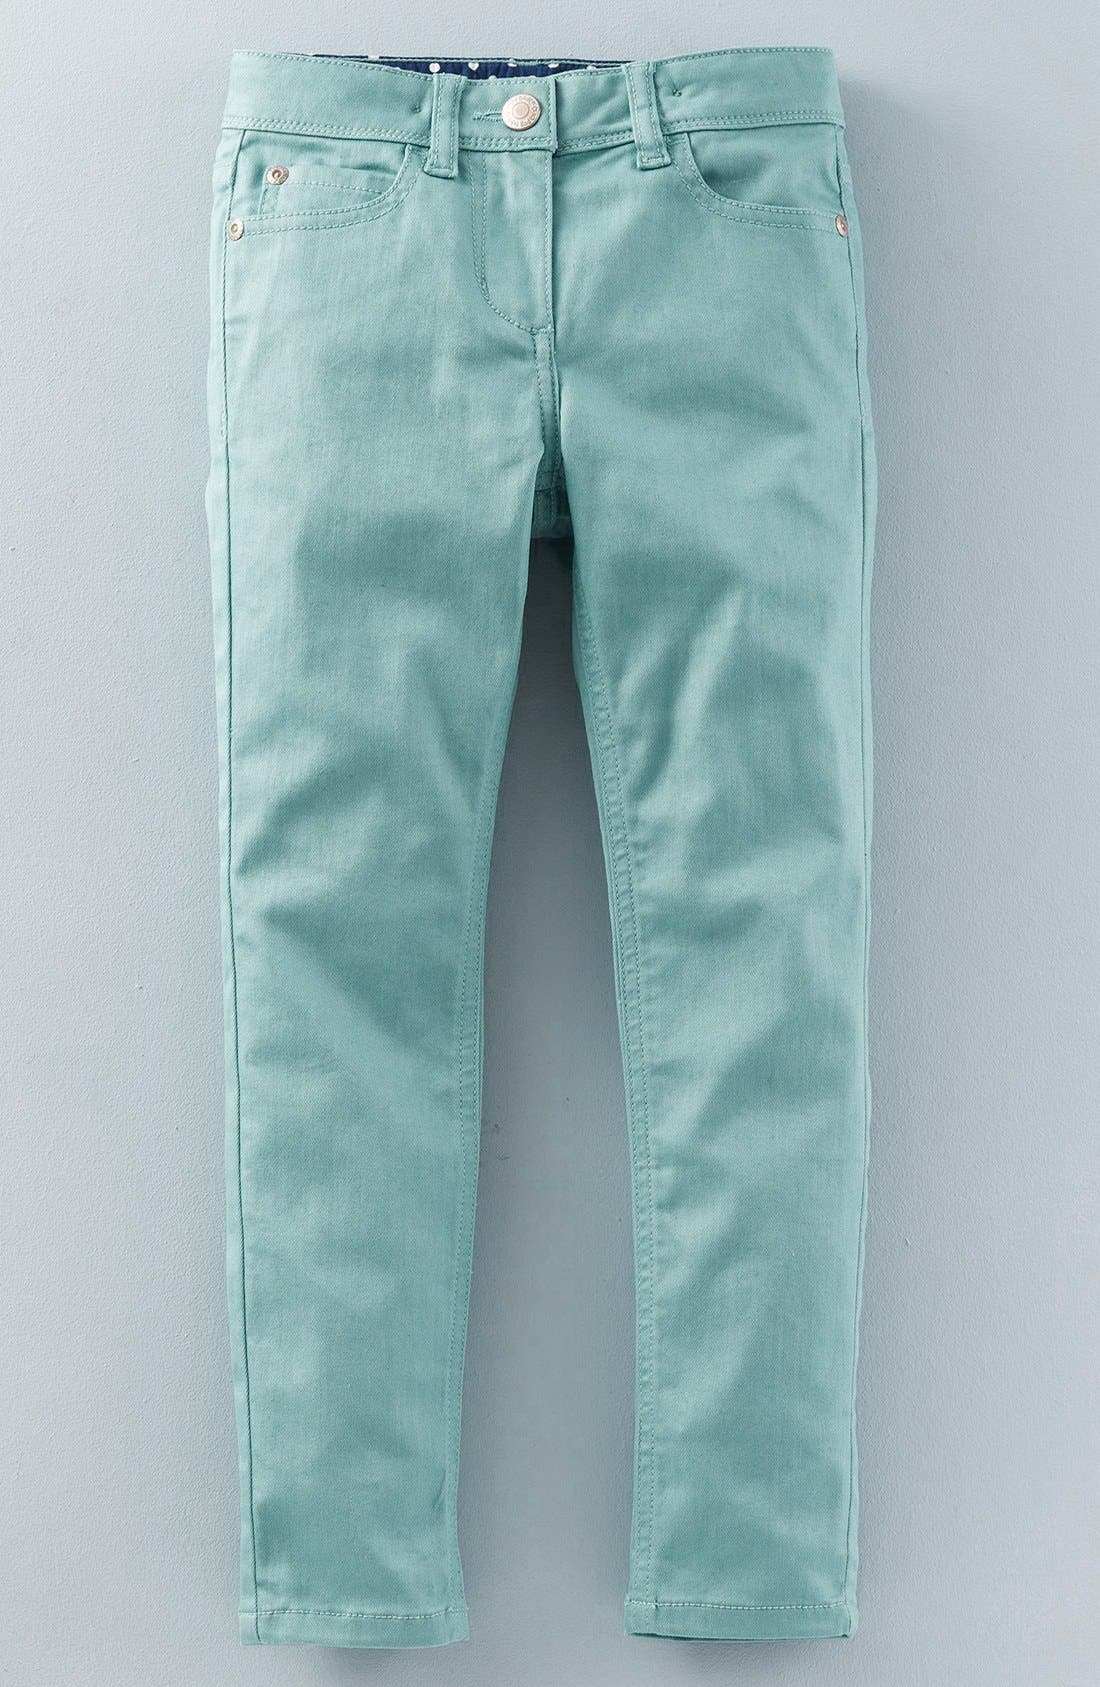 Alternate Image 1 Selected - Mini Boden Super Skinny Fit Jeans (Toddler Girls, Little Girls & Big Girls)